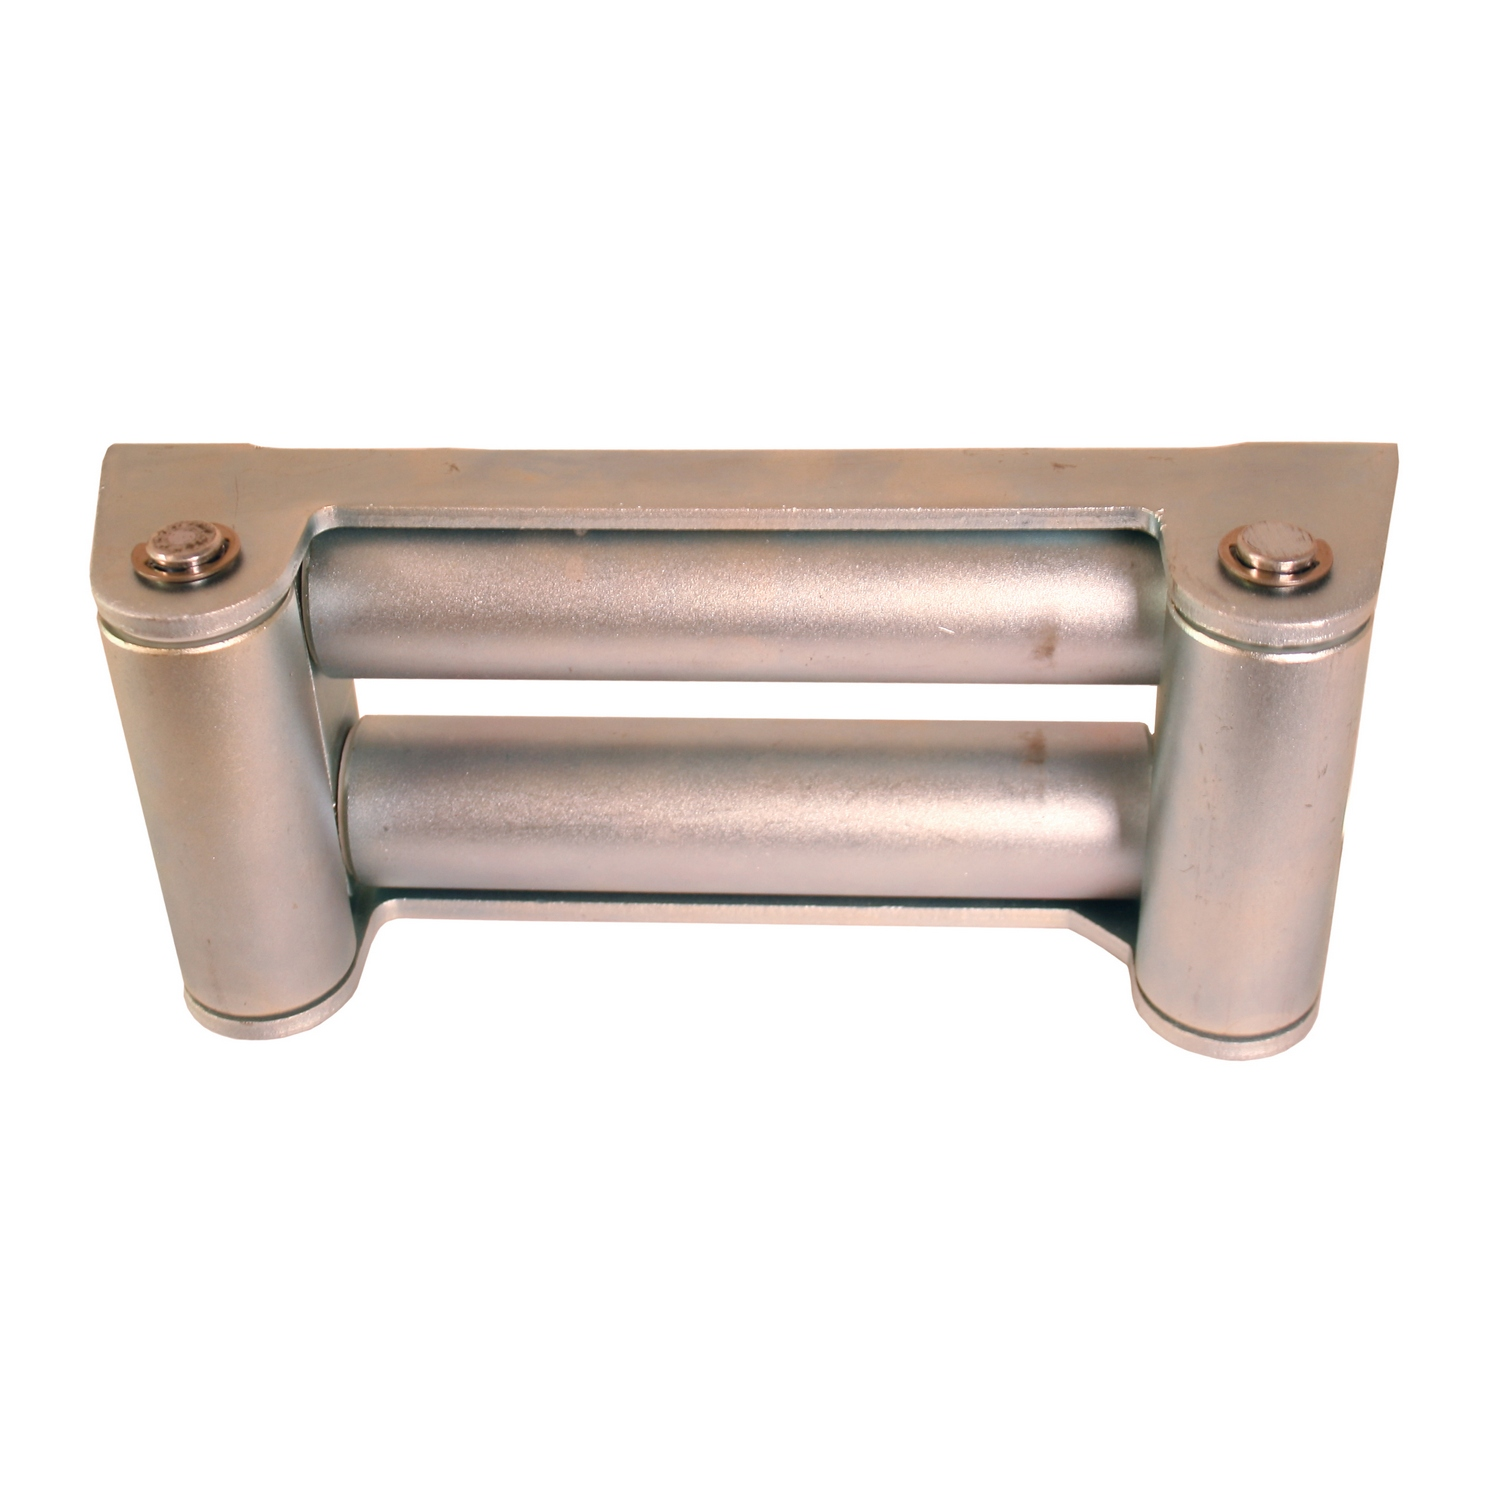 Rugged Ridge 8500lbs Roller Fairlead